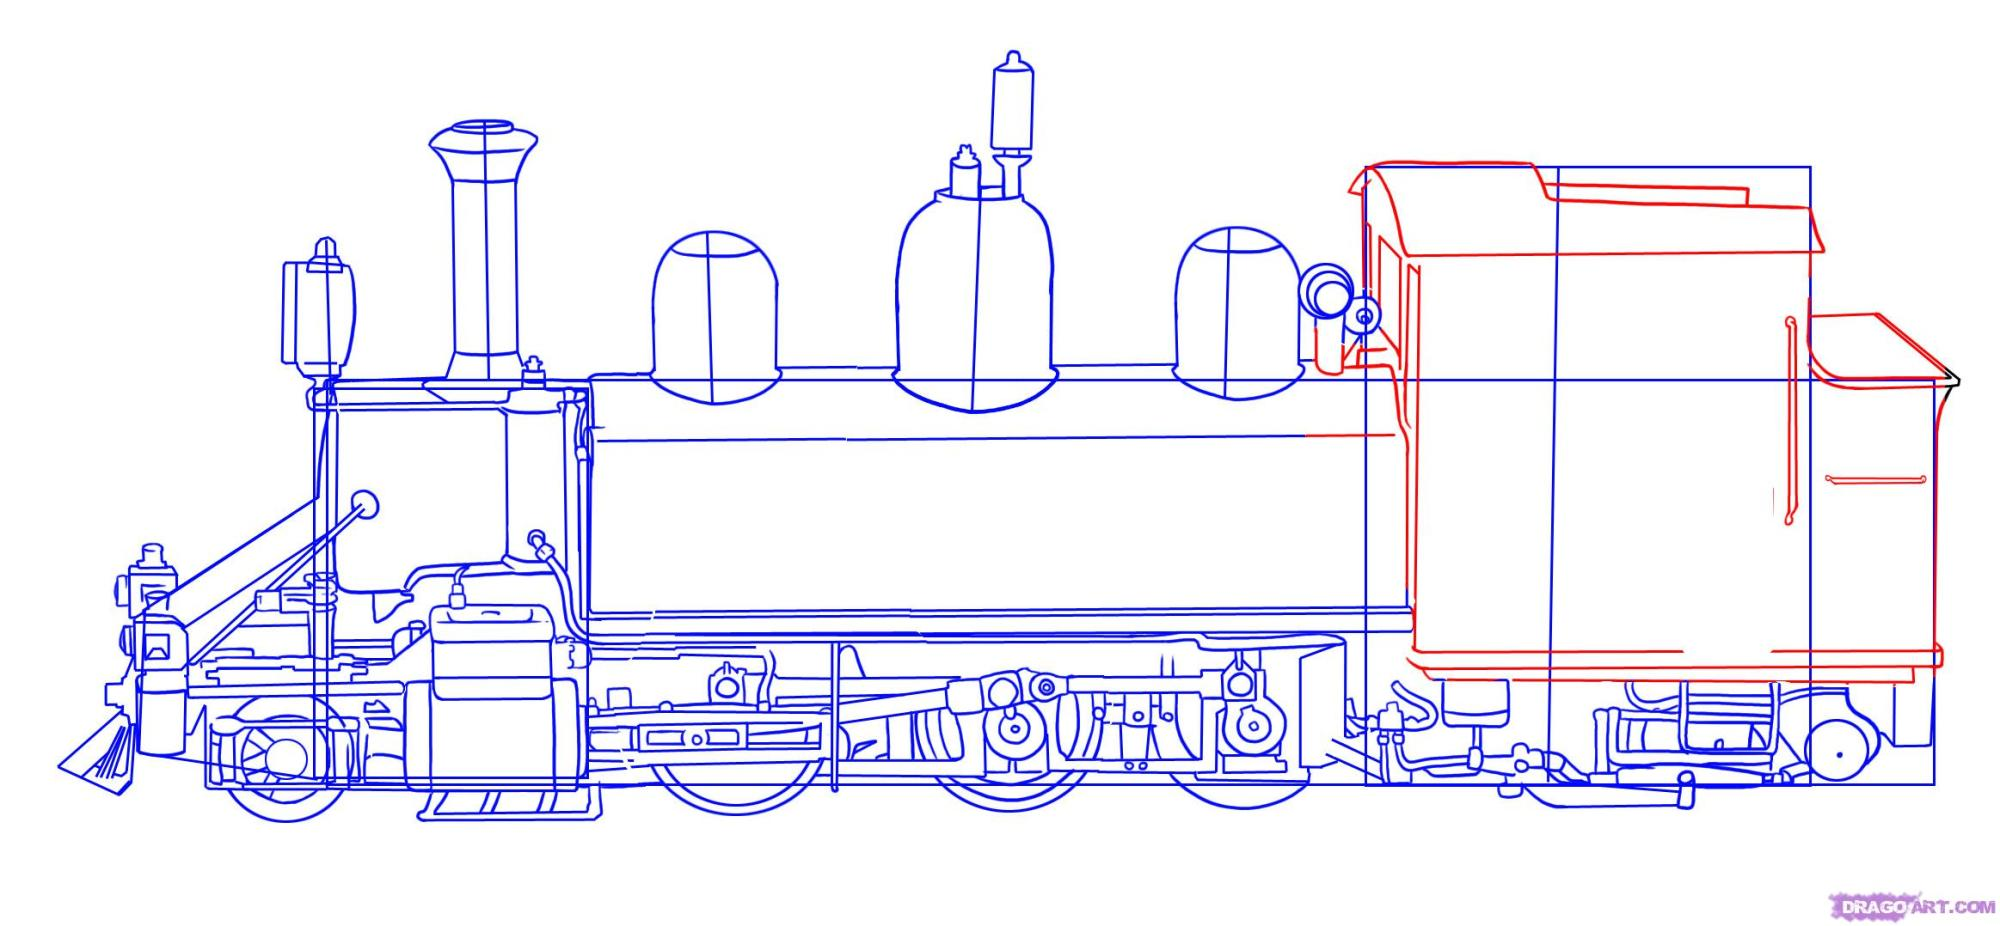 hight resolution of how to draw a train step by step trains transportation free